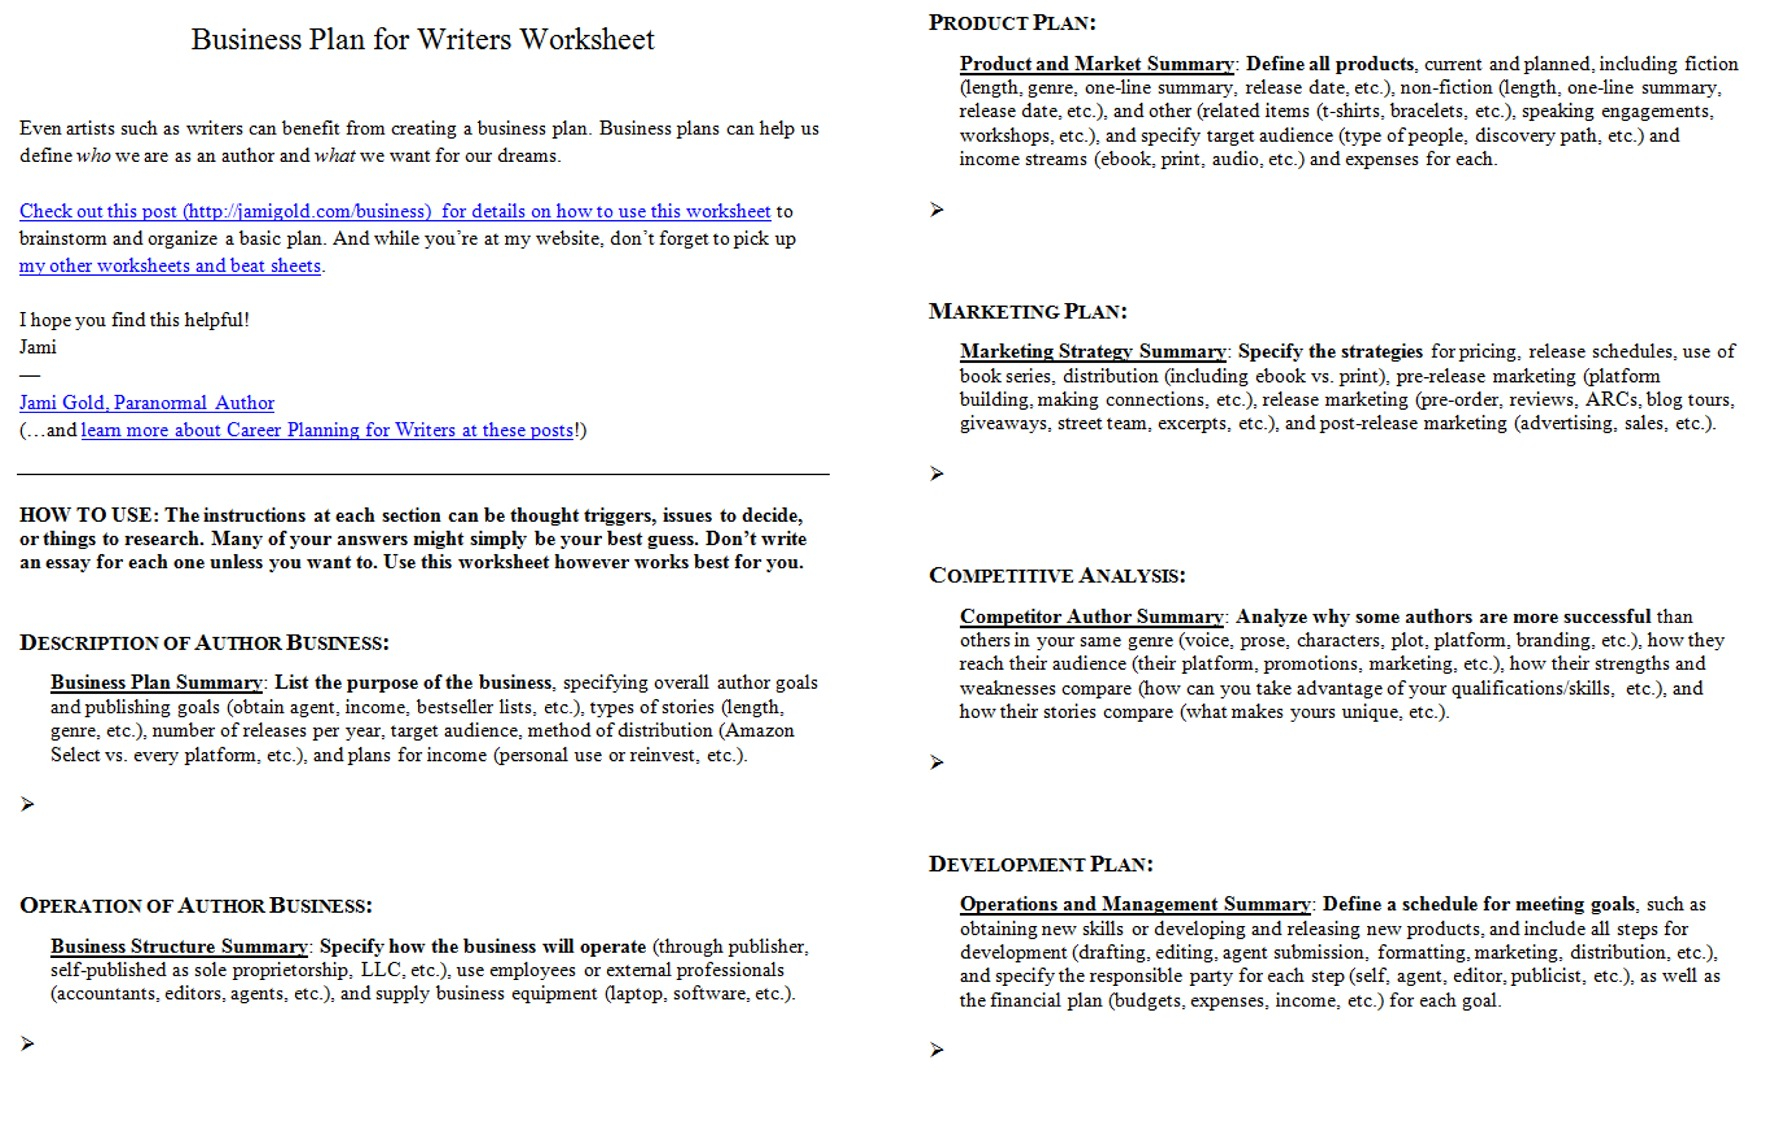 Proatmealus  Mesmerizing Worksheets For Writers  Jami Gold Paranormal Author With Fascinating Screen Shot Of Both Pages Of The Business Plan For Writers Worksheet With Extraordinary September  Reading Comprehension Worksheet Also Spongebob Genetics Worksheet In Addition Th Grade Math Order Of Operations Worksheets And Multiplying Special Case Polynomials Worksheet As Well As Thinking Mistakes Worksheet Additionally Sorting Shapes Worksheets For Kindergarten From Jamigoldcom With Proatmealus  Fascinating Worksheets For Writers  Jami Gold Paranormal Author With Extraordinary Screen Shot Of Both Pages Of The Business Plan For Writers Worksheet And Mesmerizing September  Reading Comprehension Worksheet Also Spongebob Genetics Worksheet In Addition Th Grade Math Order Of Operations Worksheets From Jamigoldcom